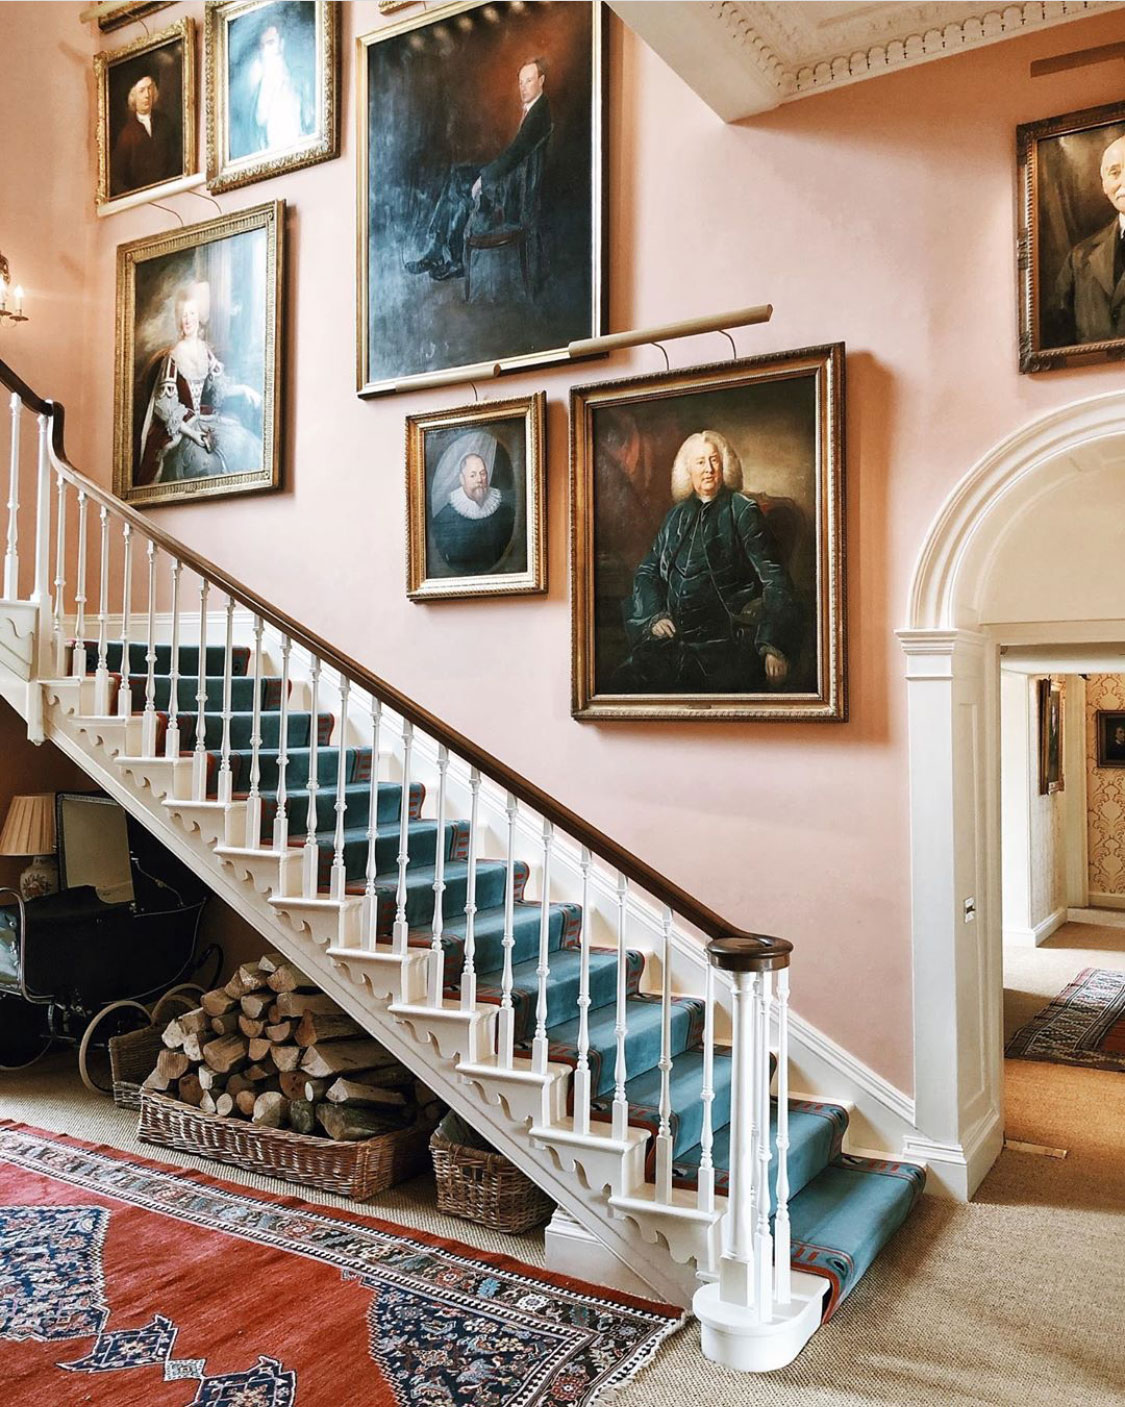 Weekday Wanderlust | Places: Farleigh Wallop & Brocket Hall with The Rollinson London